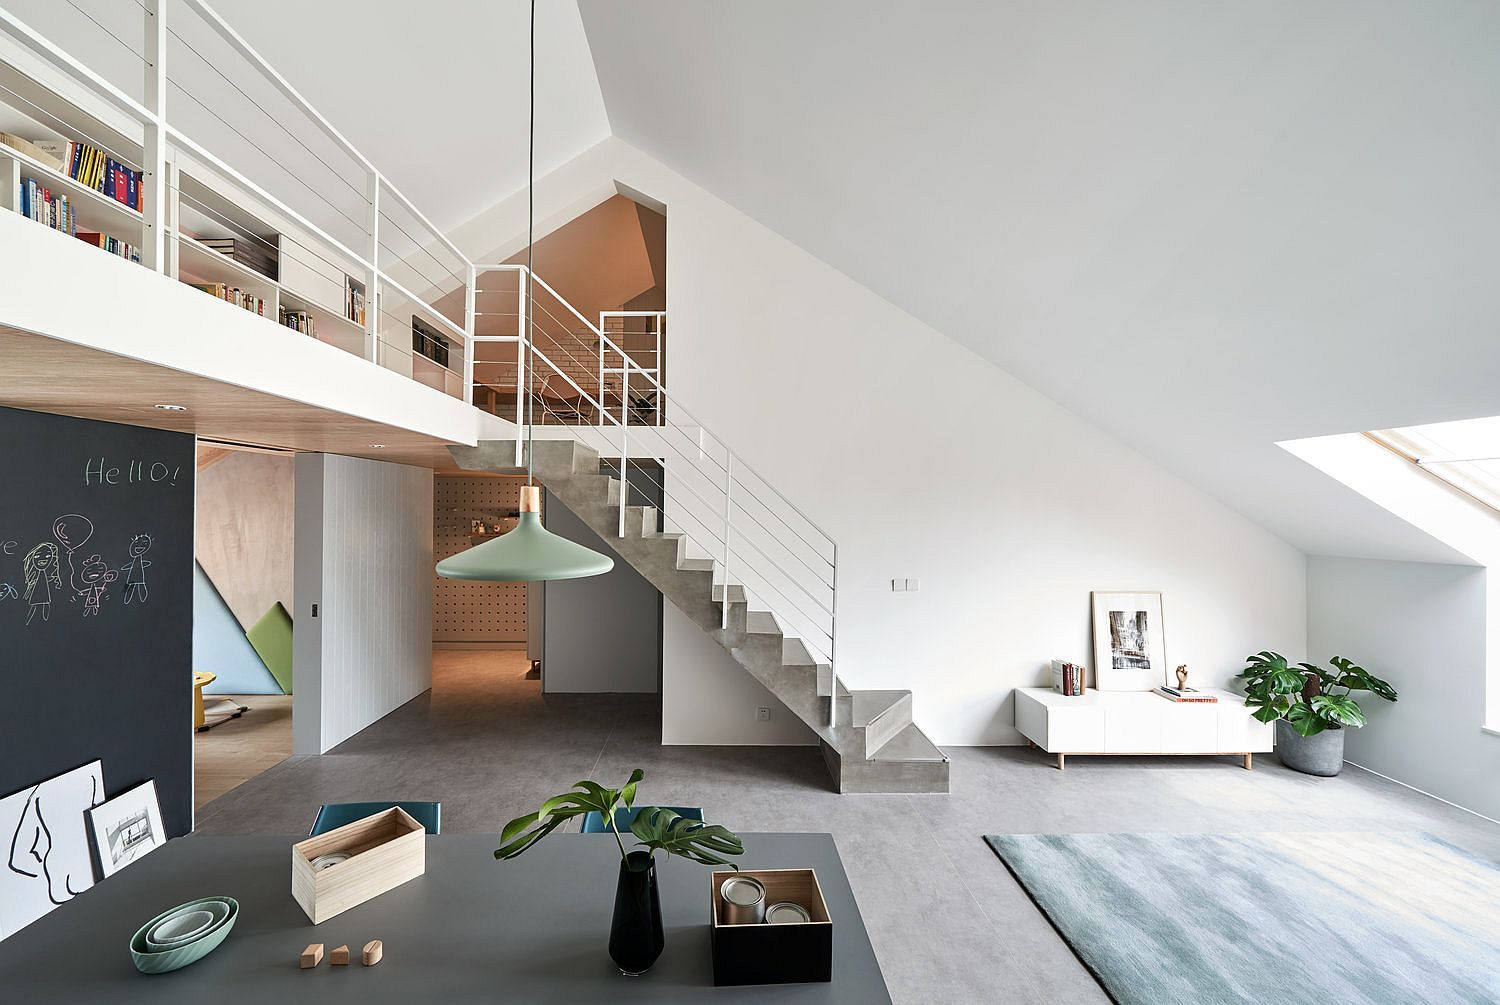 Fabulous and space-savvy Beijing apartment design with mezzanine level